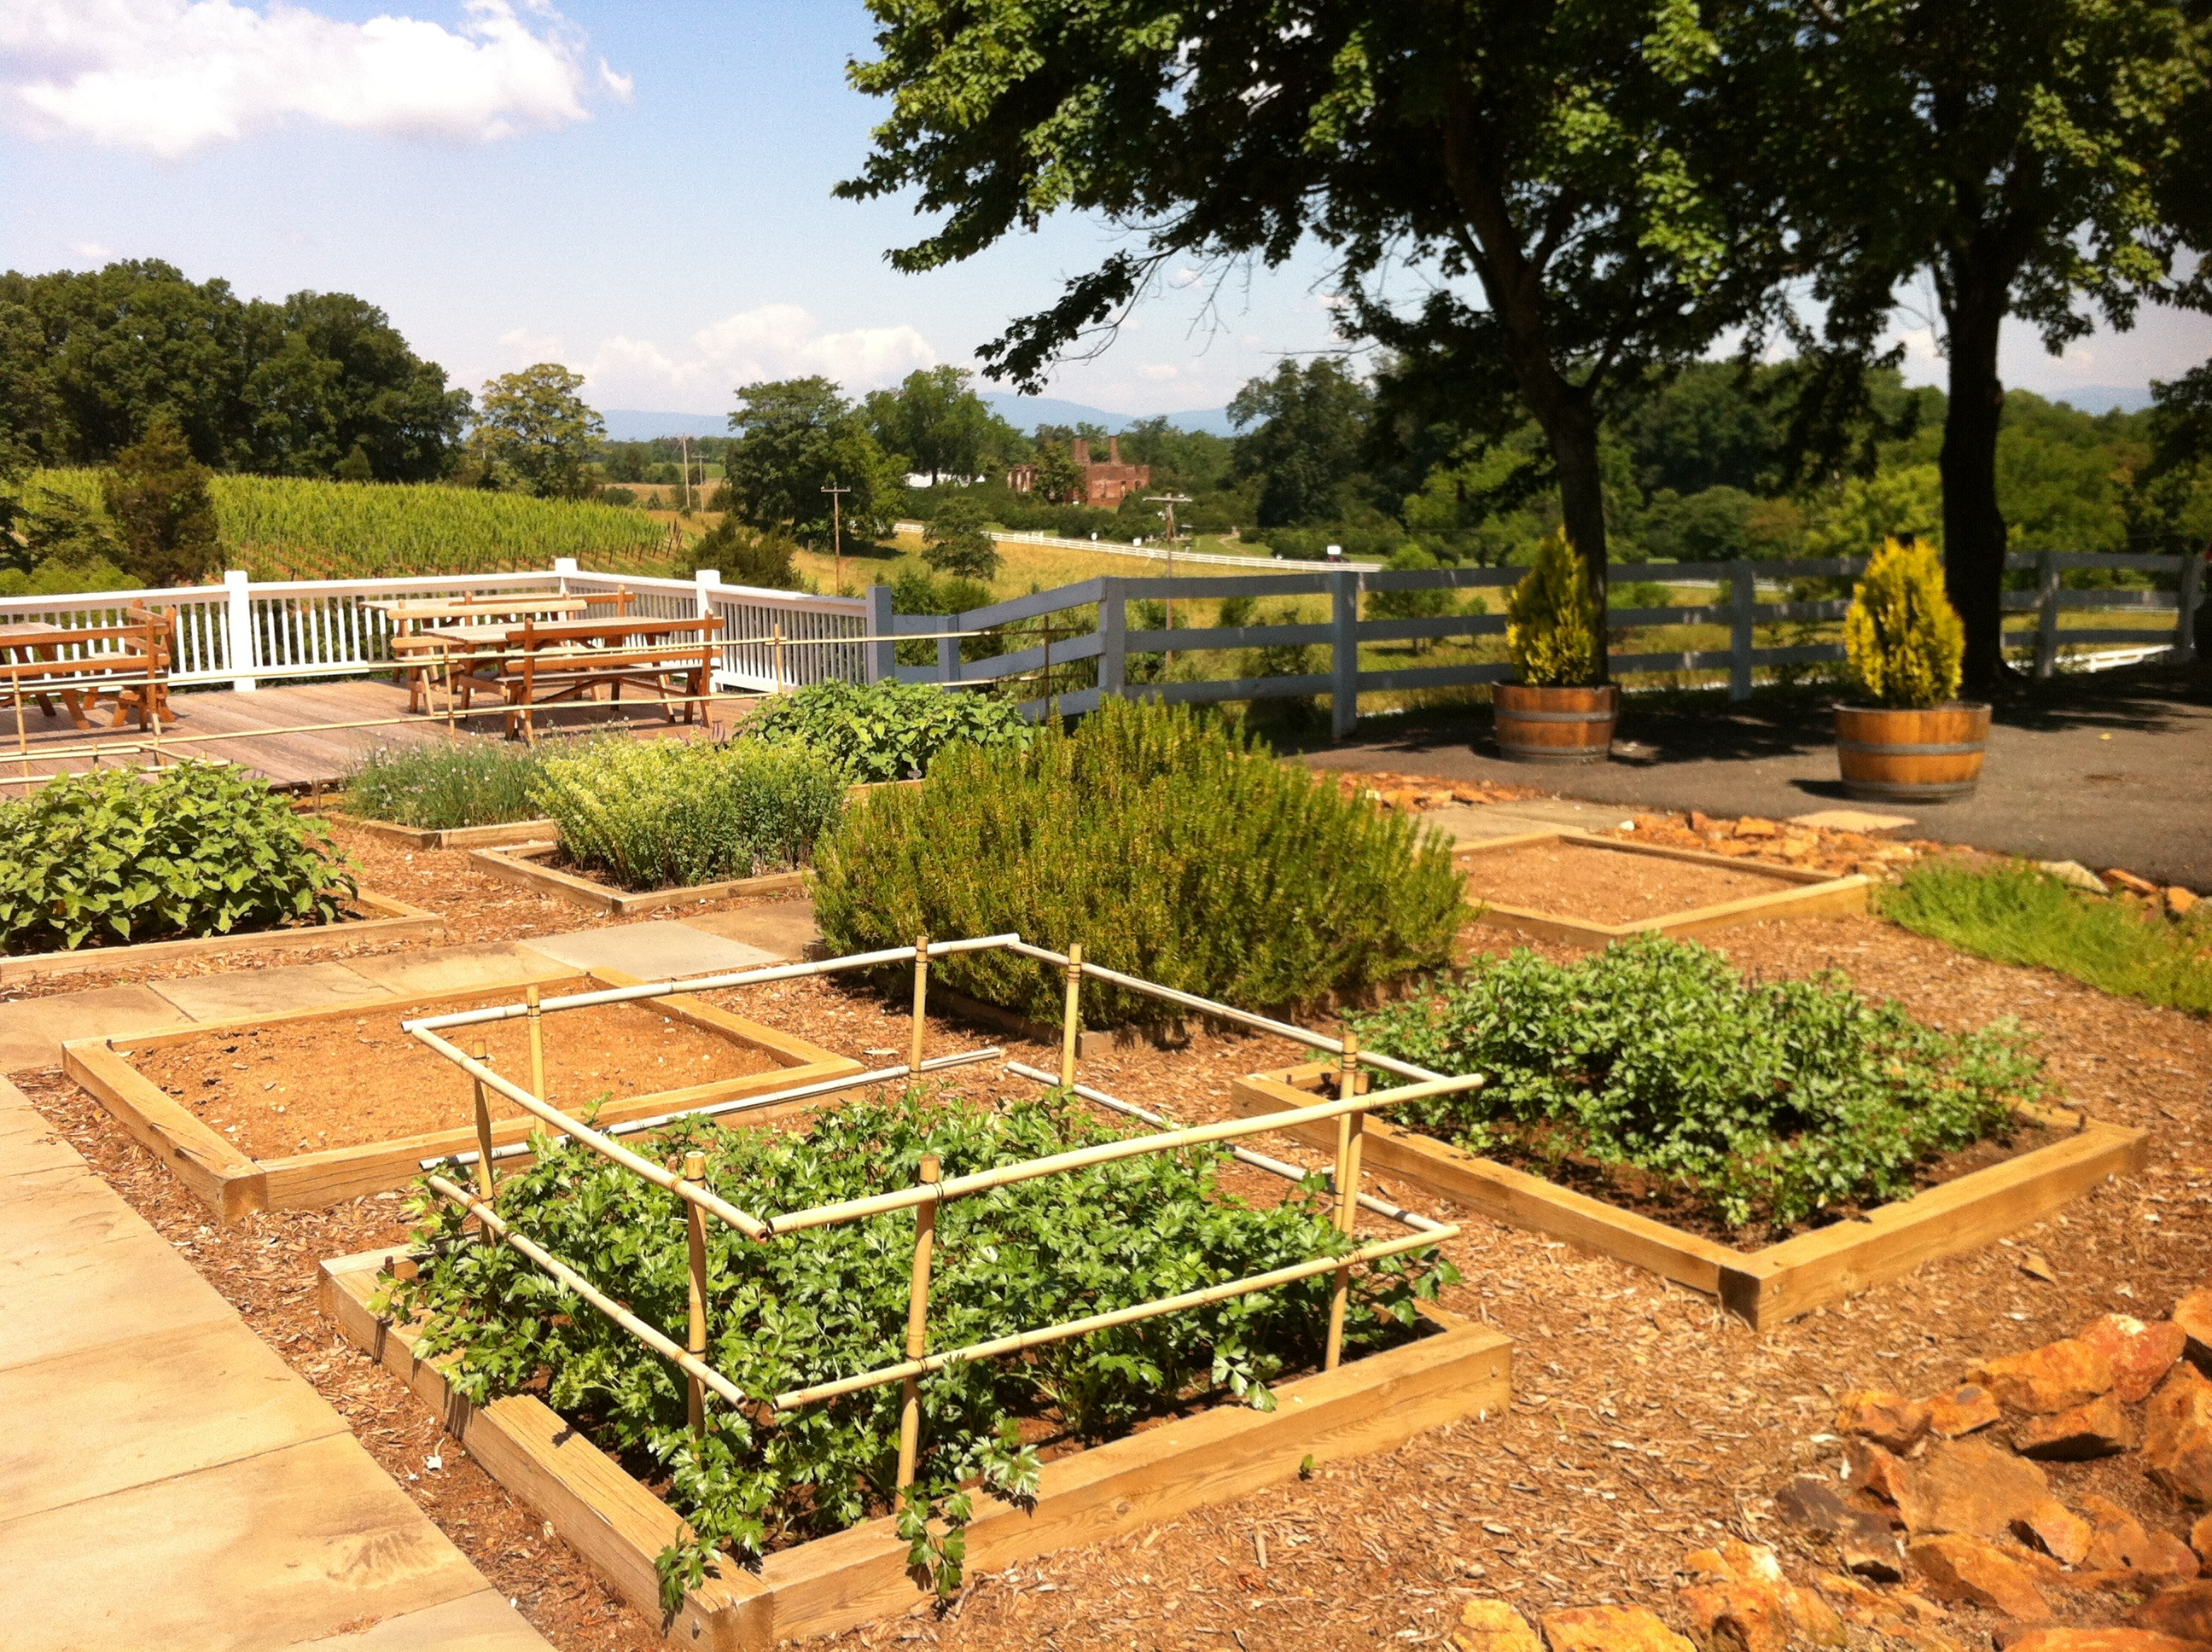 Kitchen Gardens The Kitchen Garden An Ode To Cooks And Non Cooks Alike A